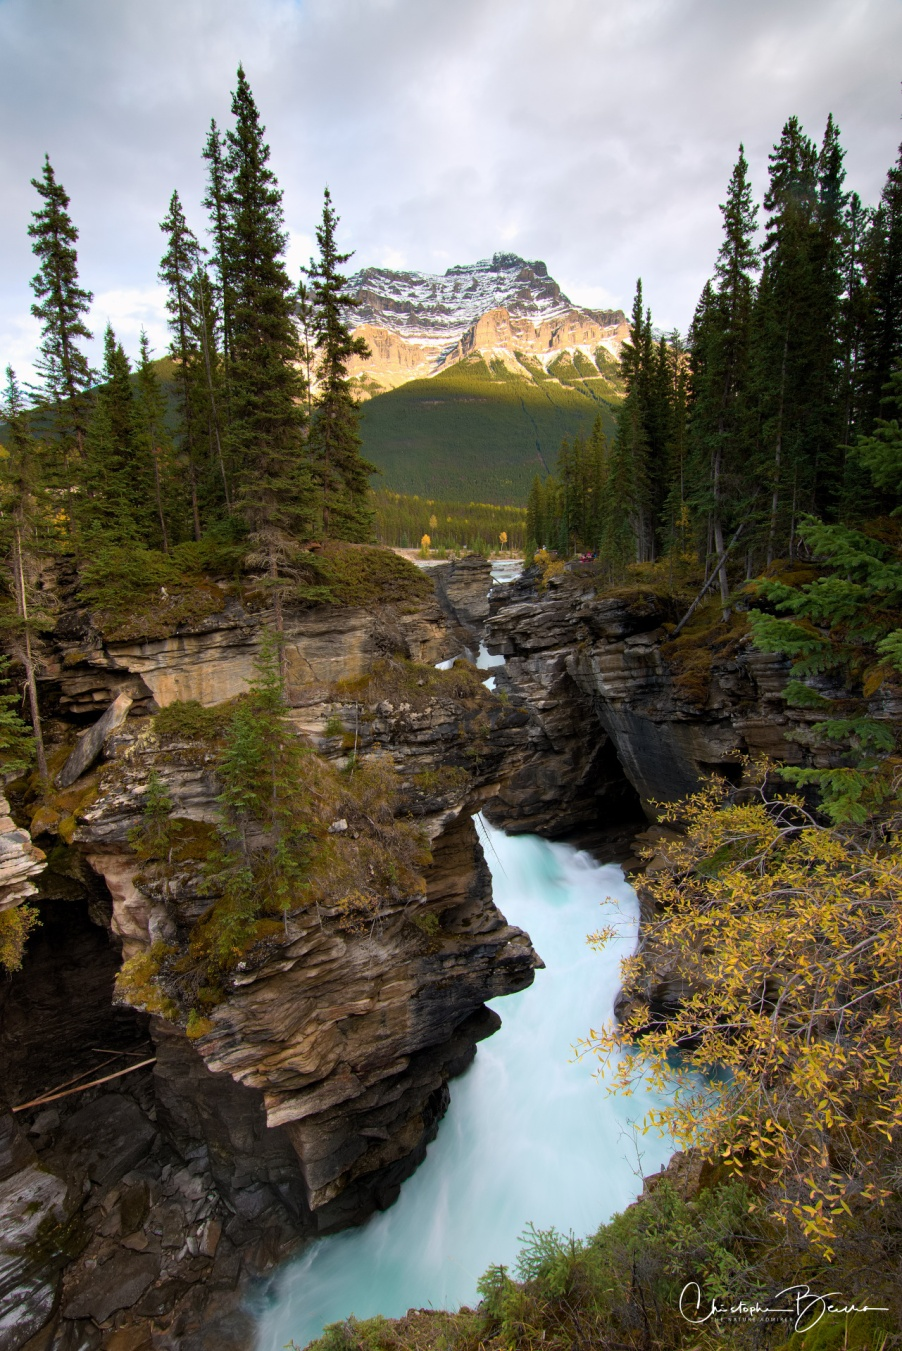 The falls at Athabasca. A hint of the green color can be seen in the water that moves just so fast through there.